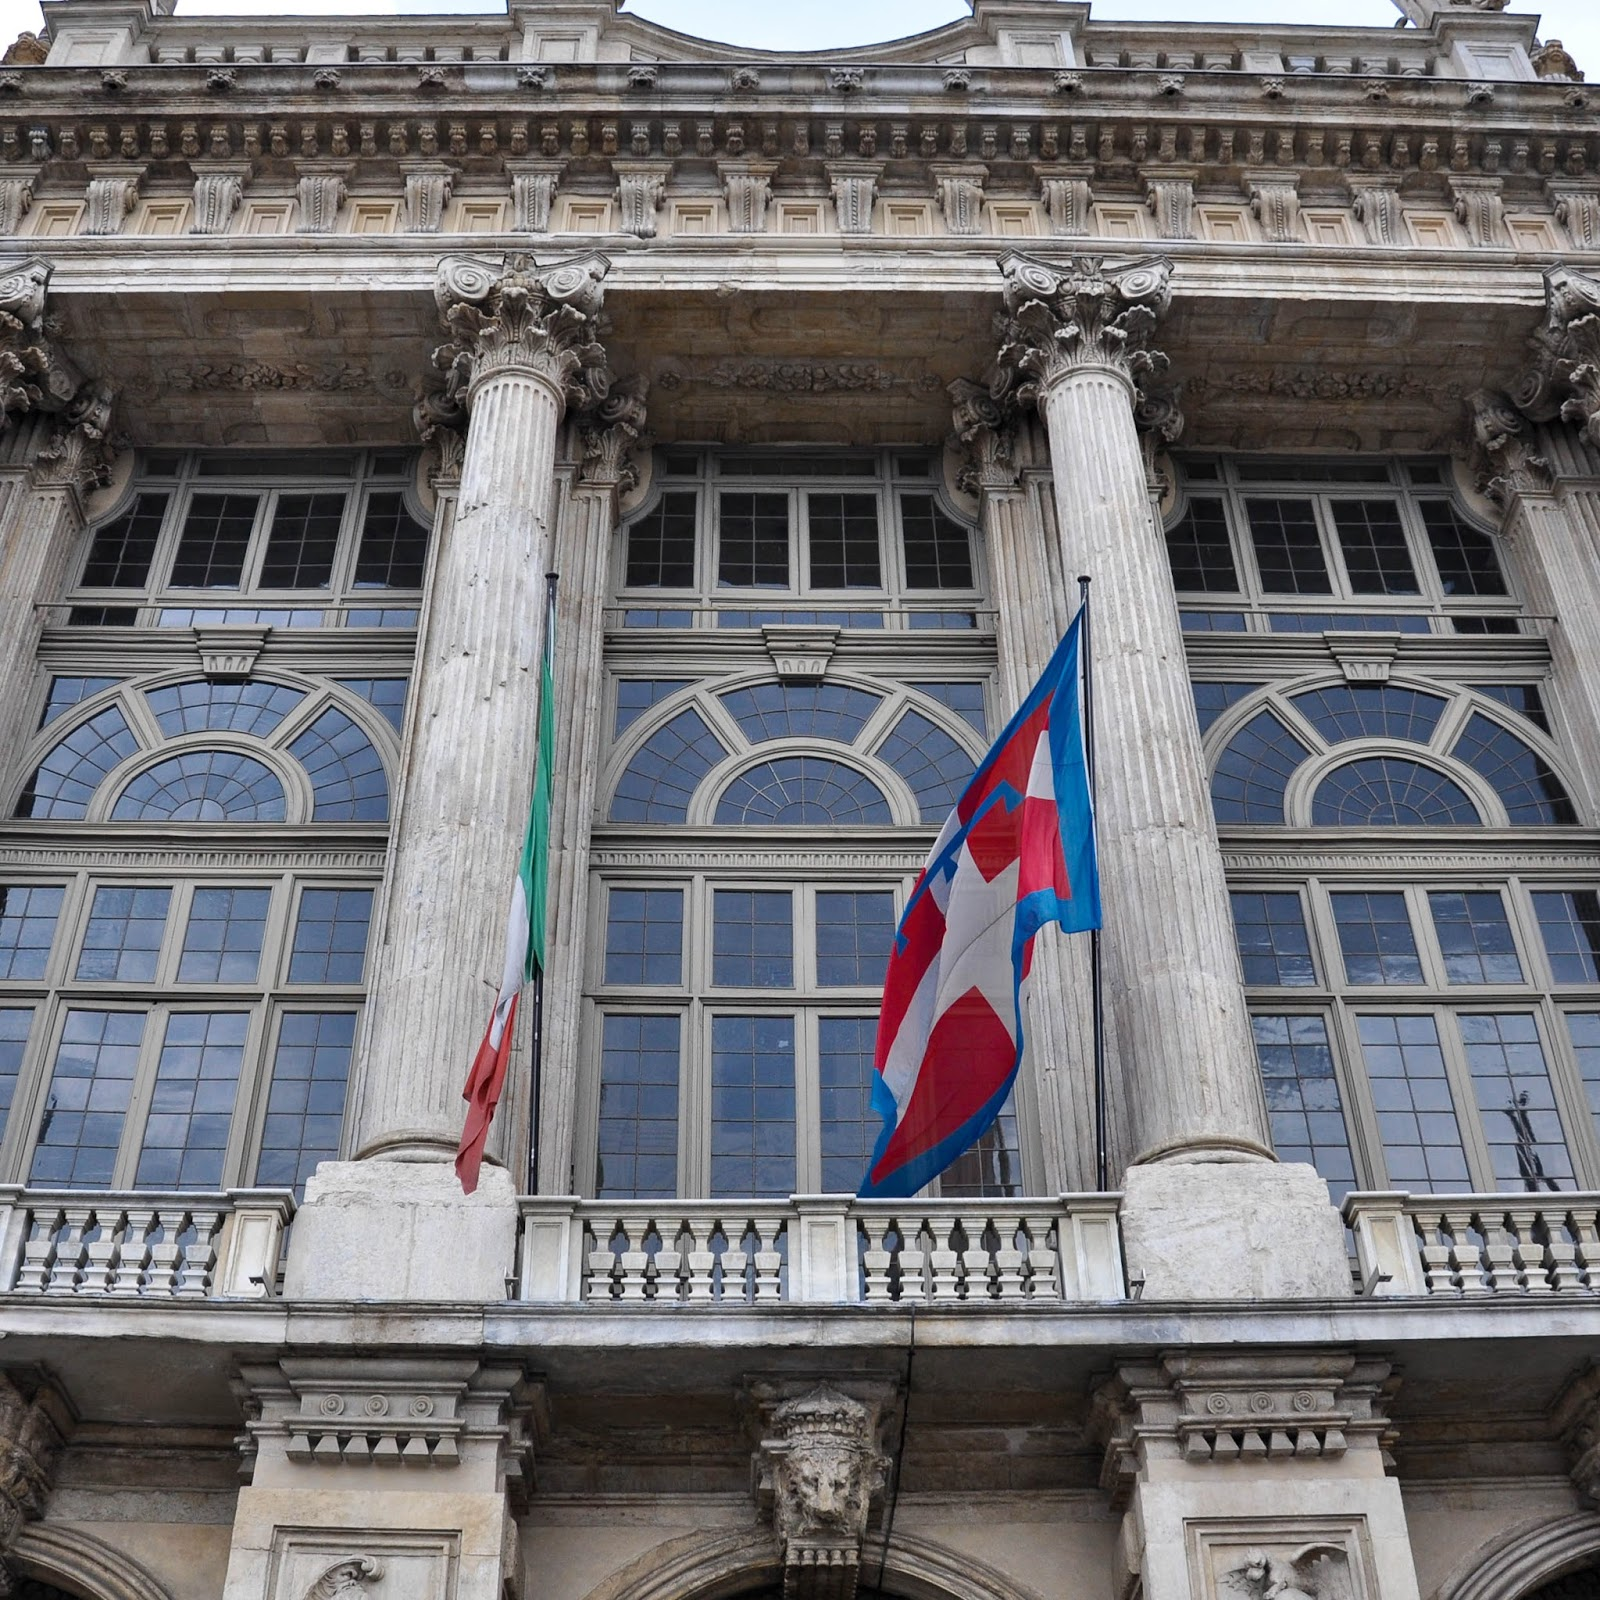 Close-up of the facade, Palazzo Madama, Turin, Italy